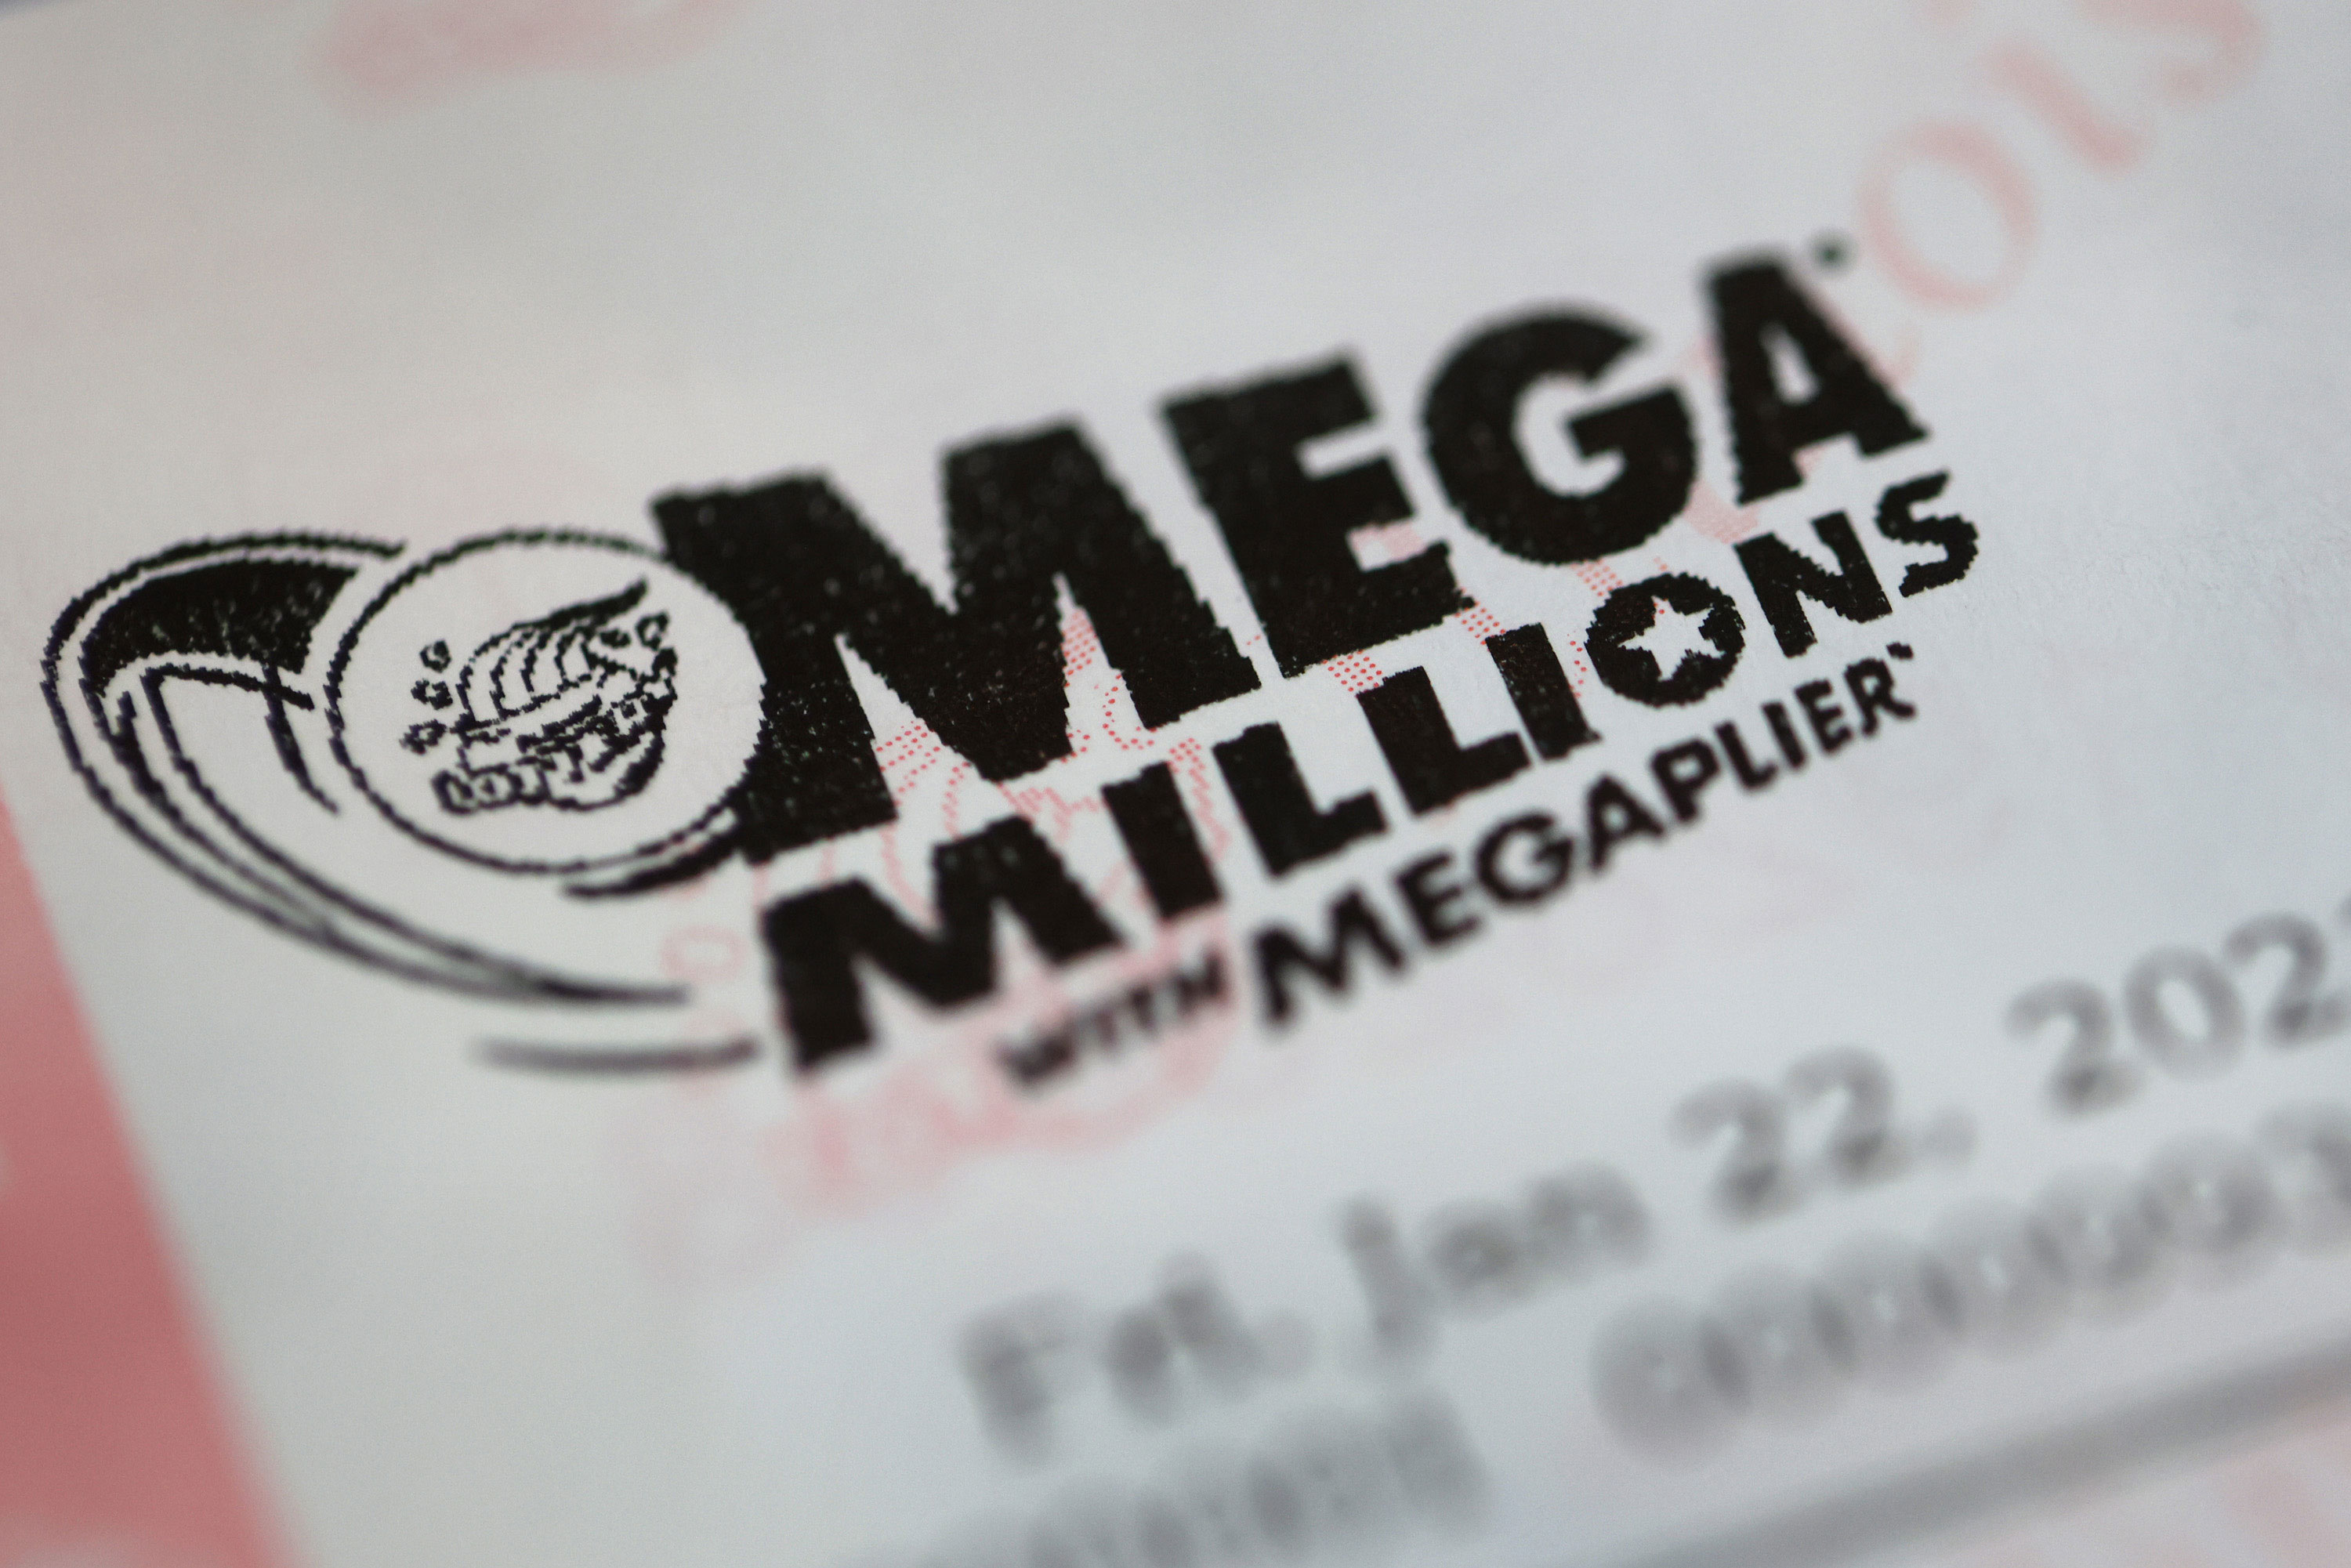 The winning ticket in the $1 billion Mega Millions lottery was bought in Michigan